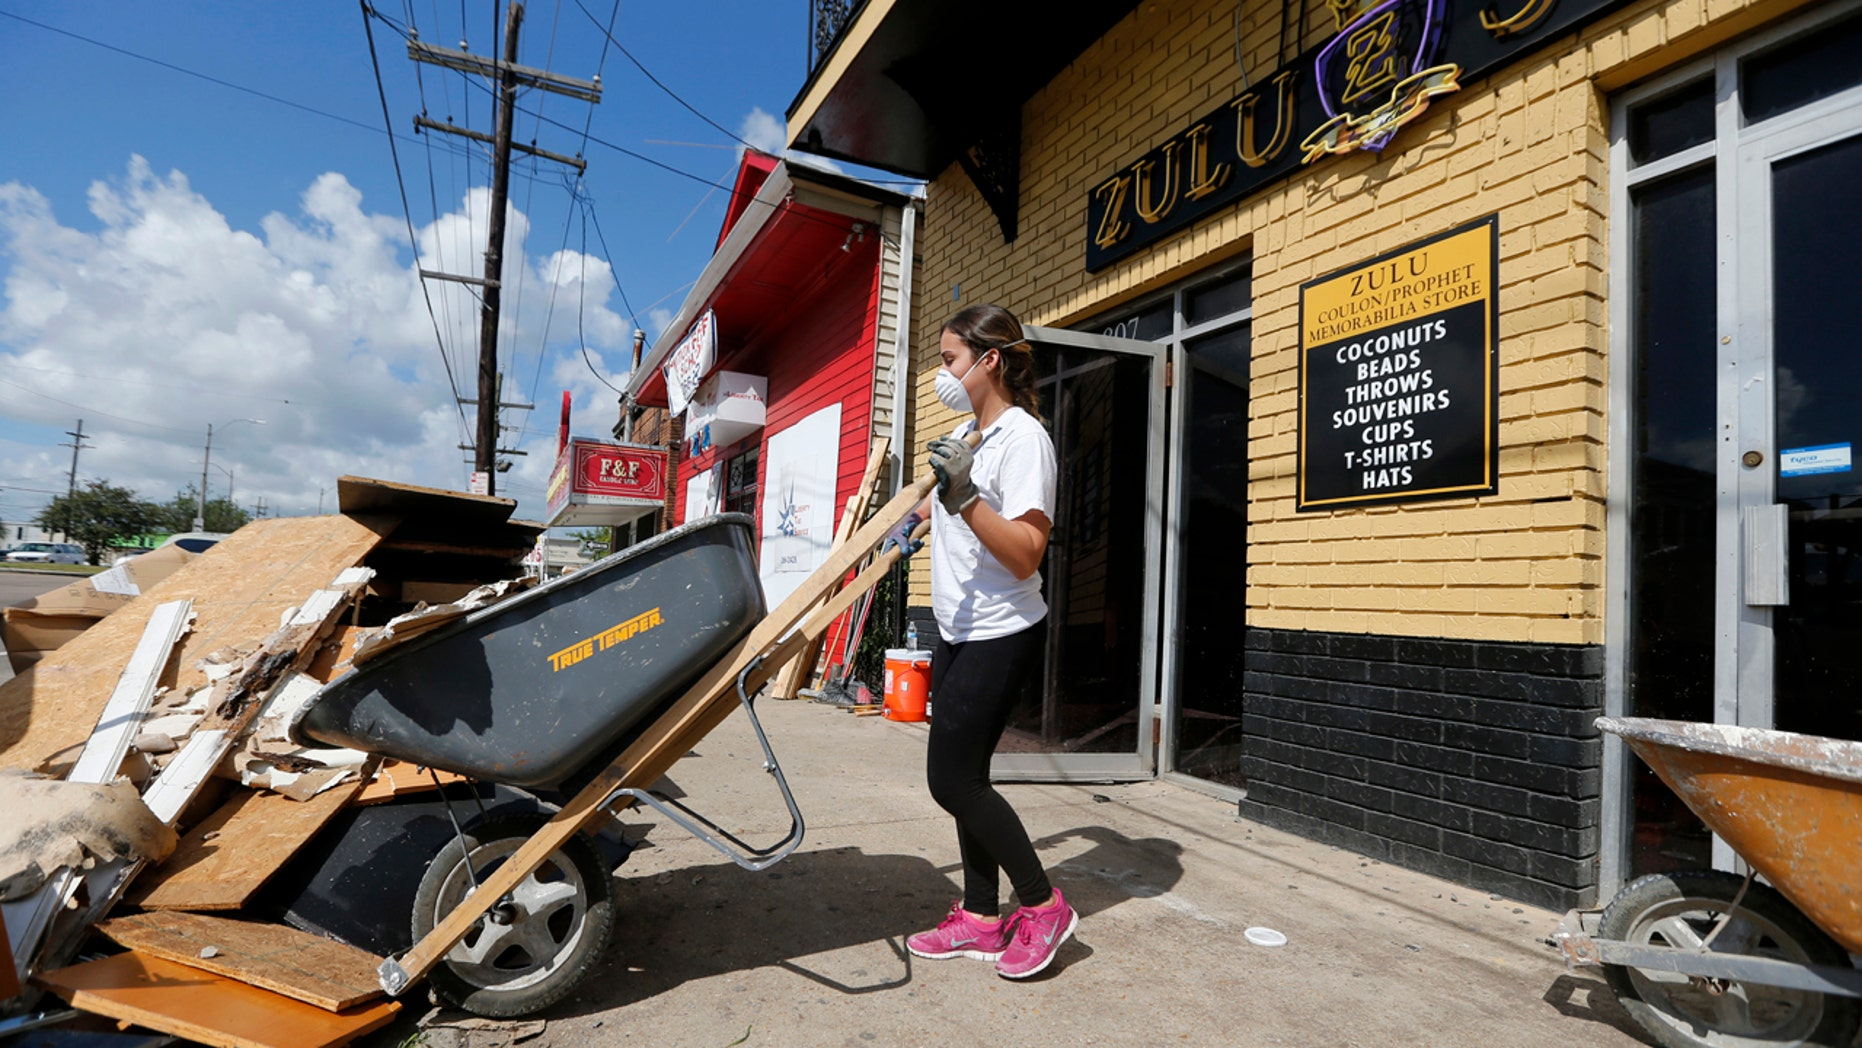 Pre-med student Sheila Tendero, from the Miami Medical Team, helps gut the Zulu Social Aid & Pleasure Club Store in New Orleans, which flooded during storms.